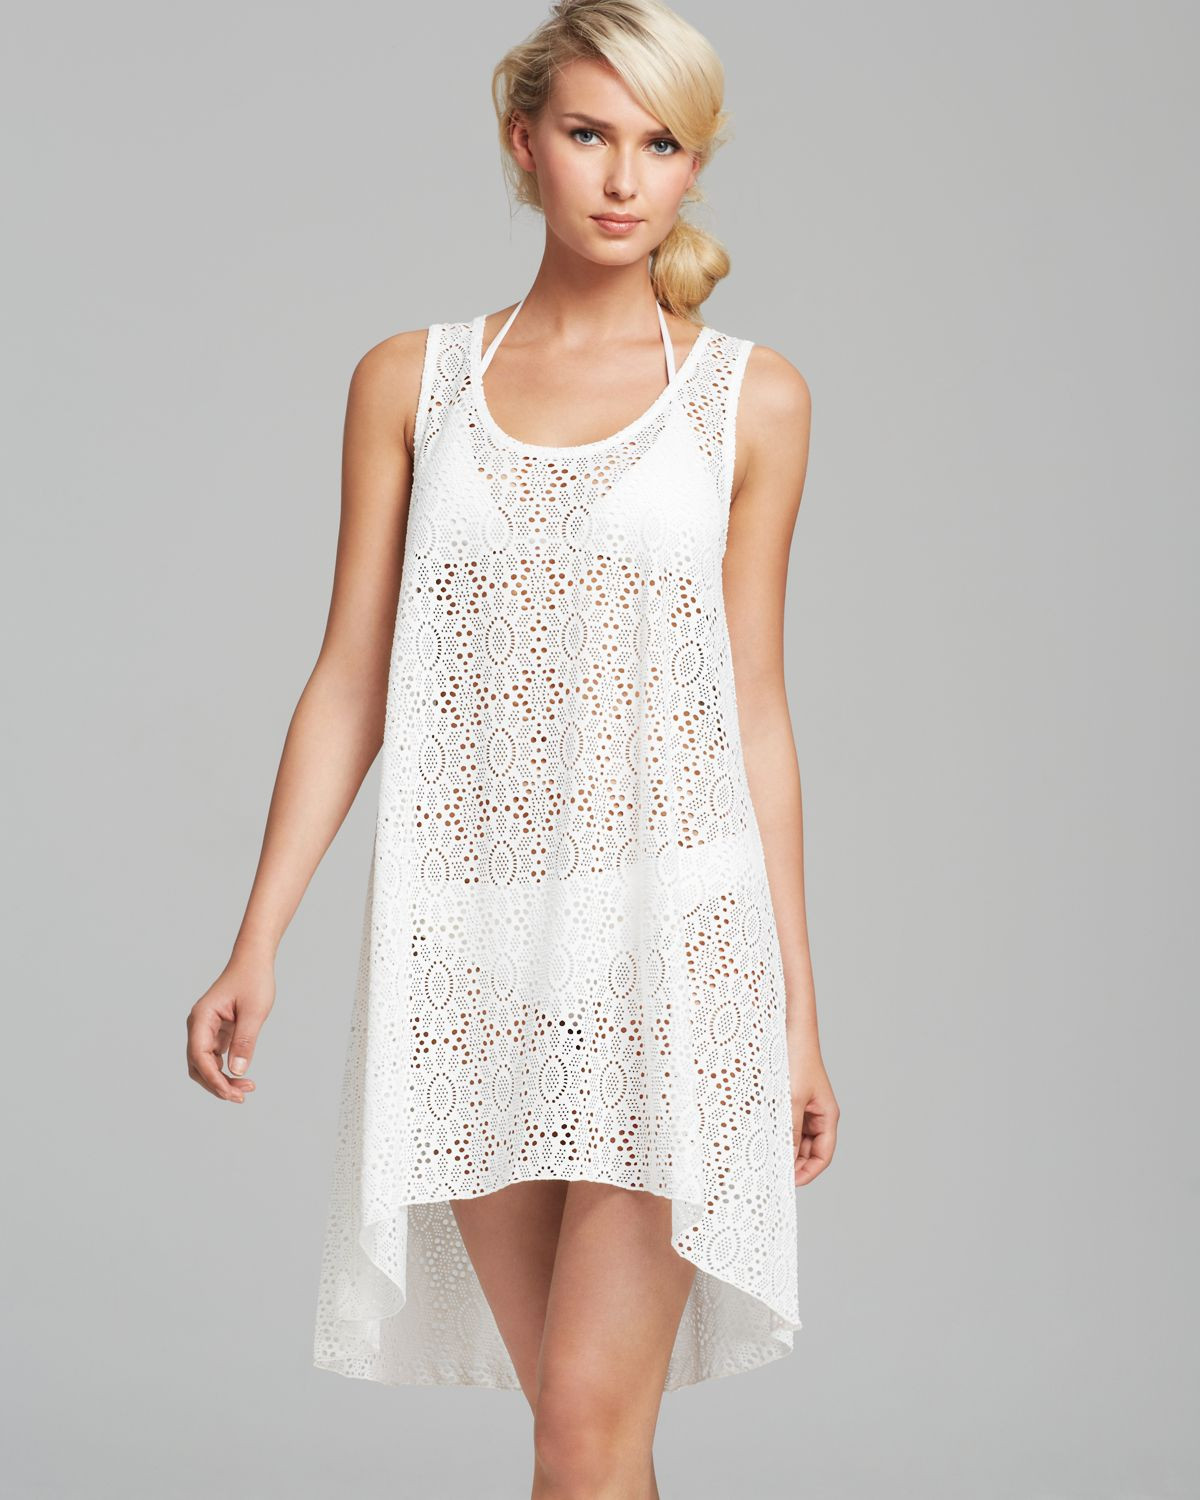 White Crochet Coverup Unique Gottex Tutti Frutti Crochet Cover Up Tank Dress In White Of Unique 50 Models White Crochet Coverup